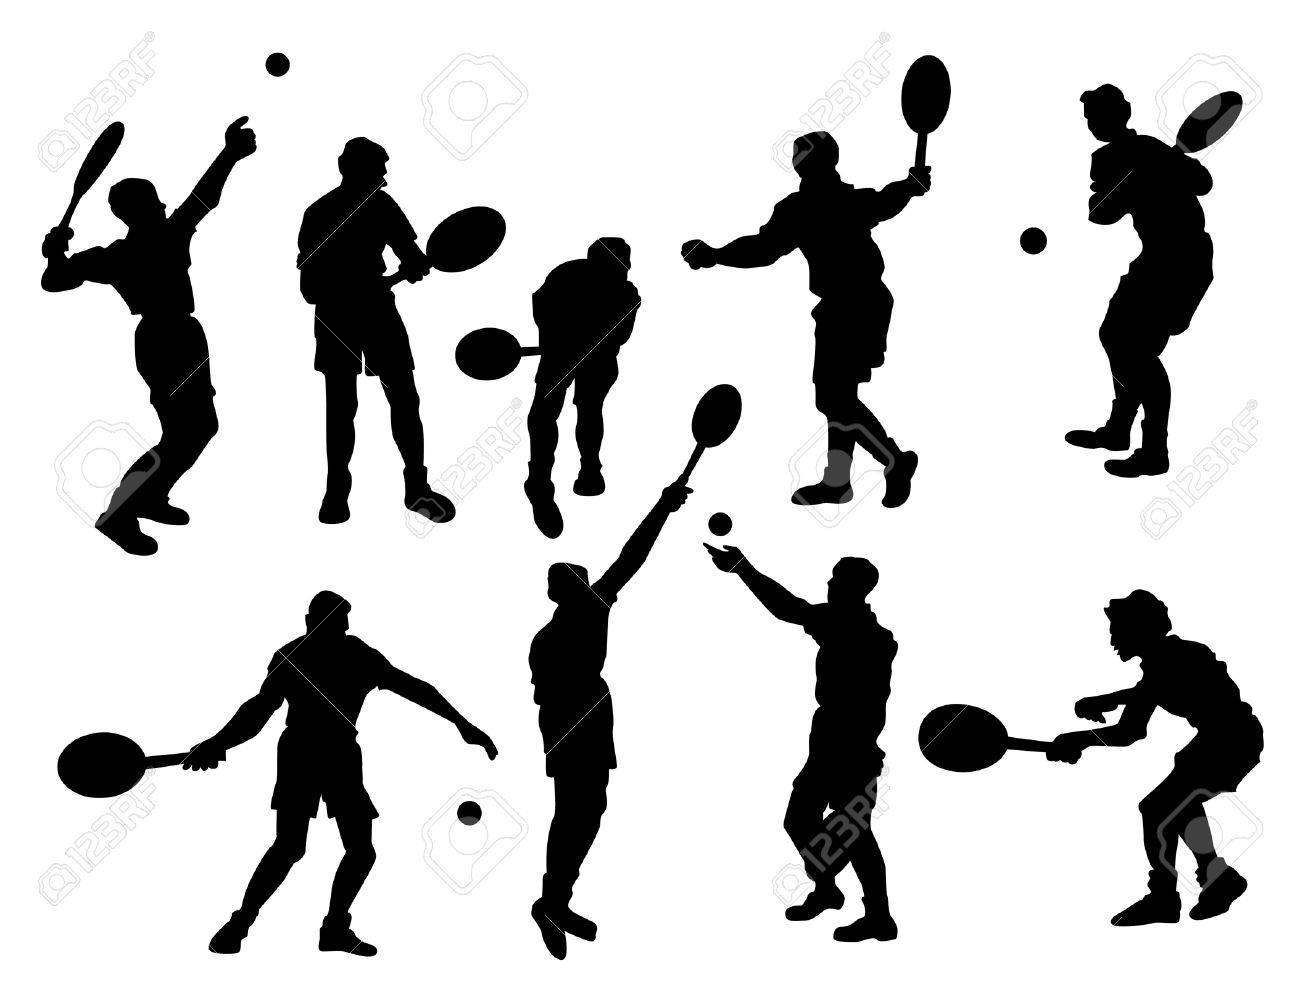 Tennis Players Silhouette Stock Vector - 1975642